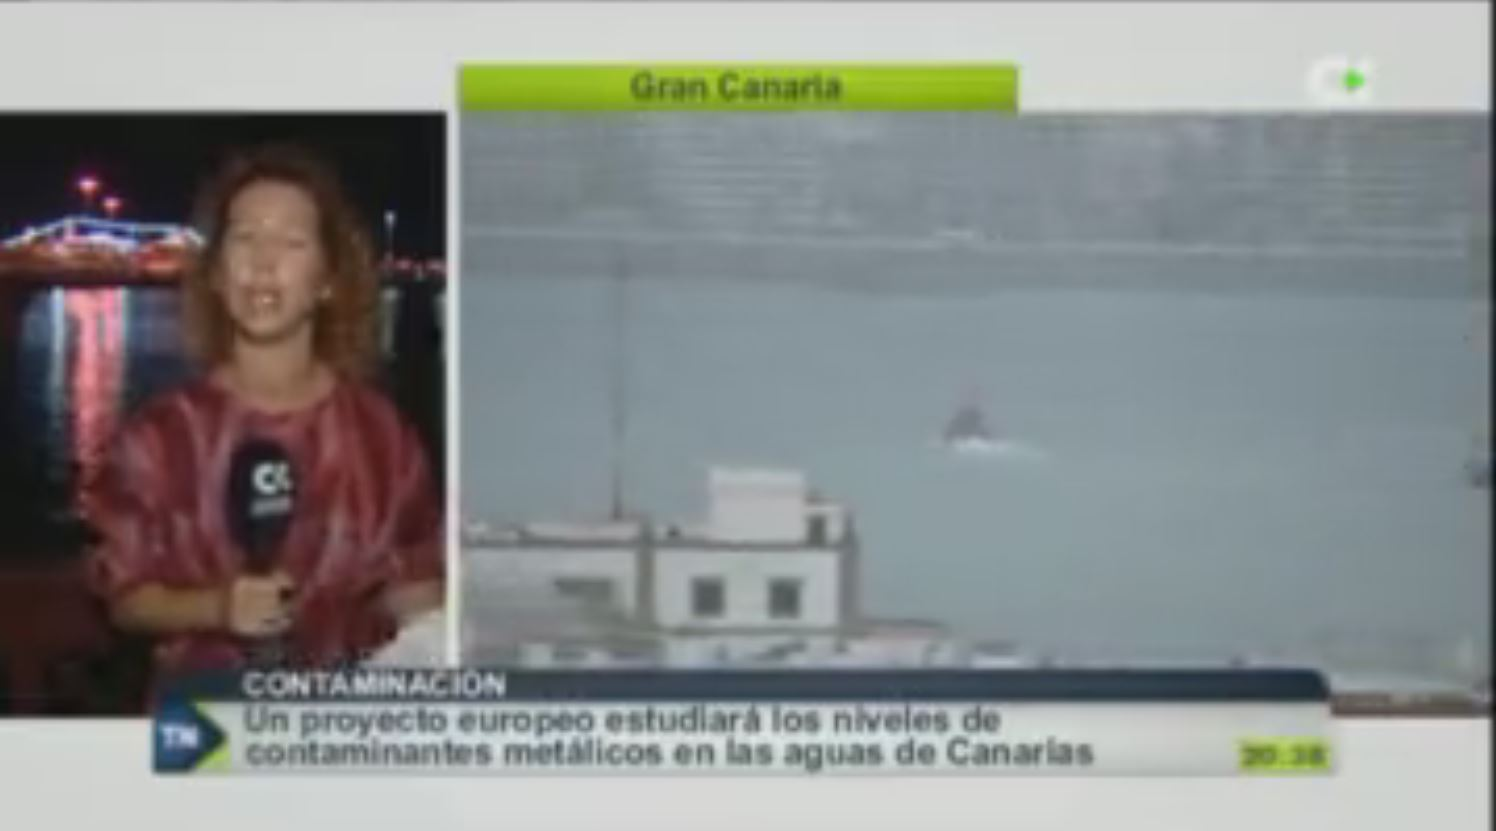 MONITOOL project on the Canarian Television